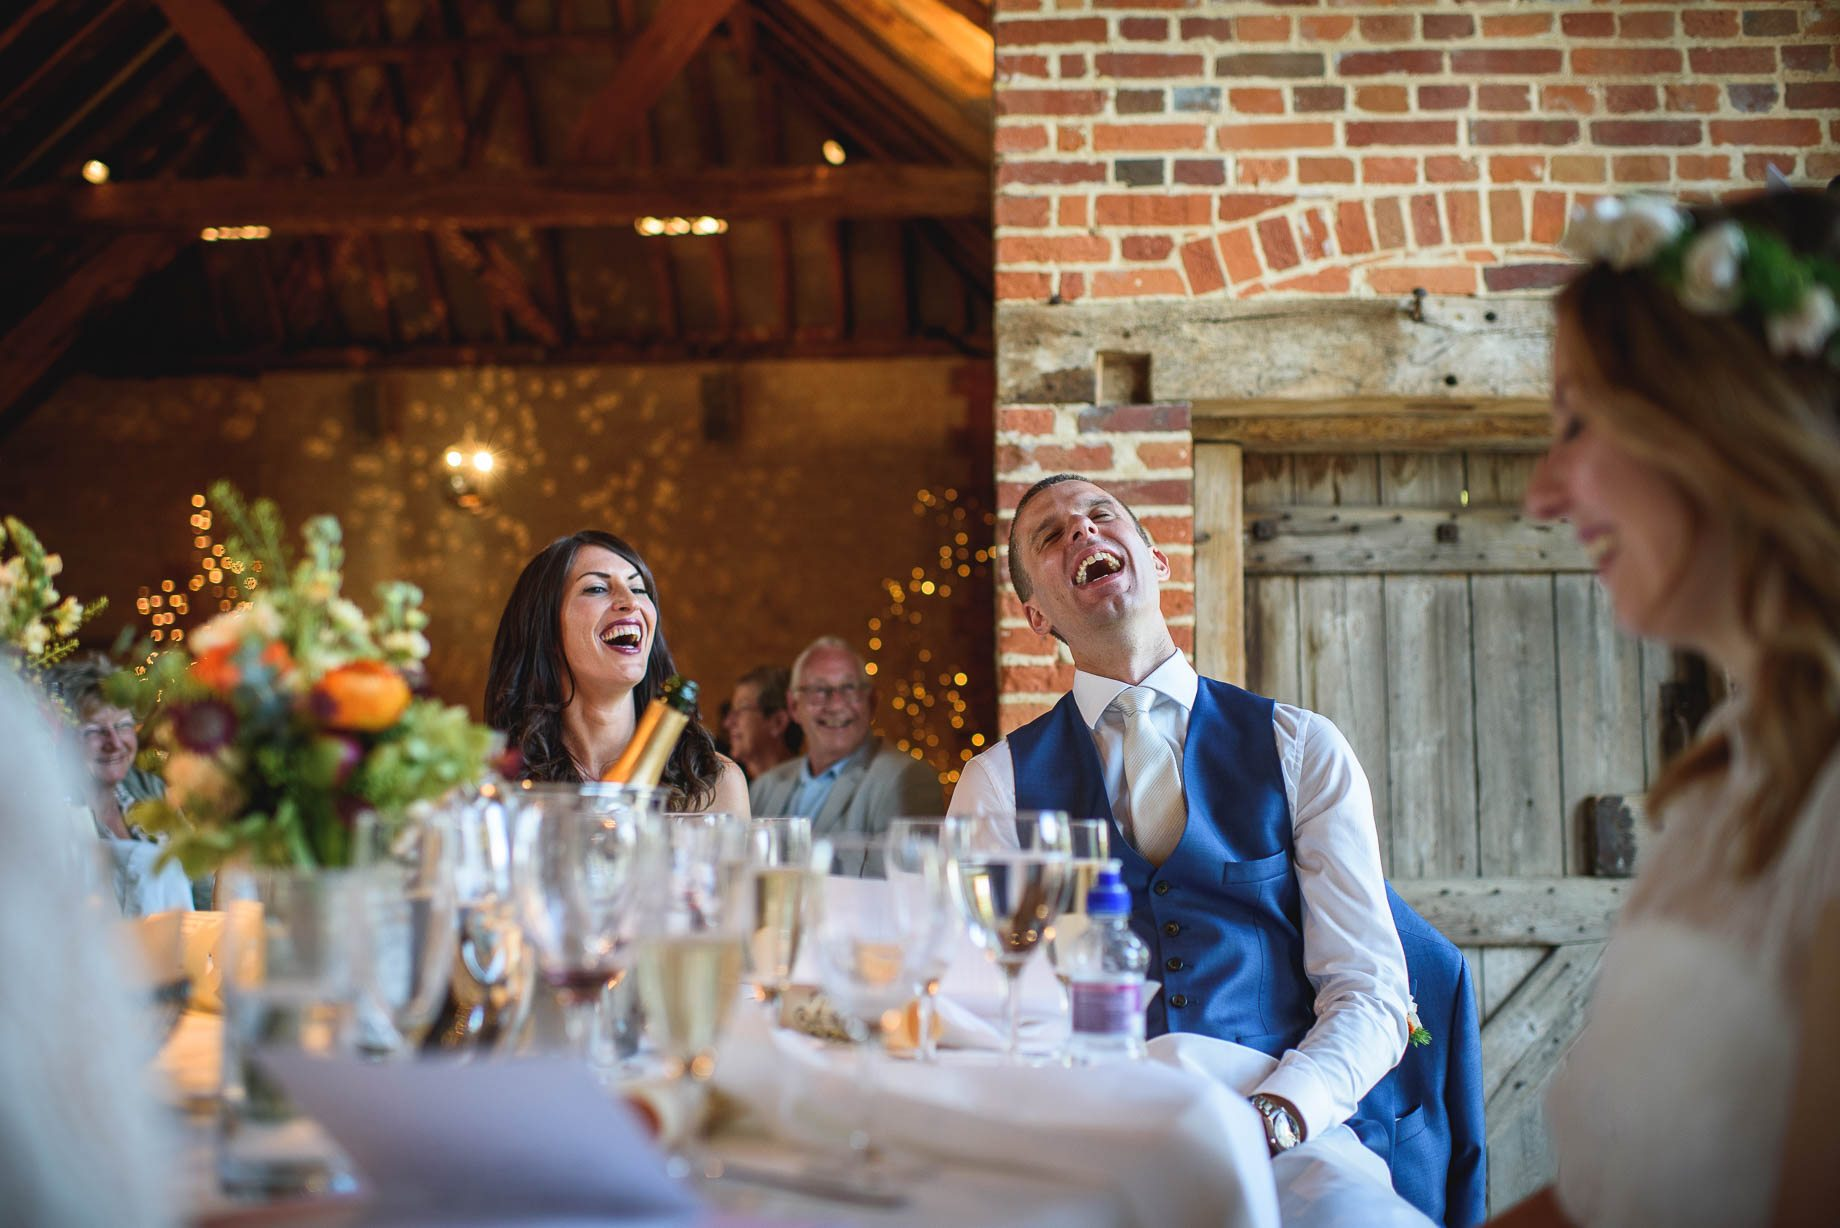 Bury Court Barn wedding photography by Guy Collier - Jo and Jamie (128 of 160)